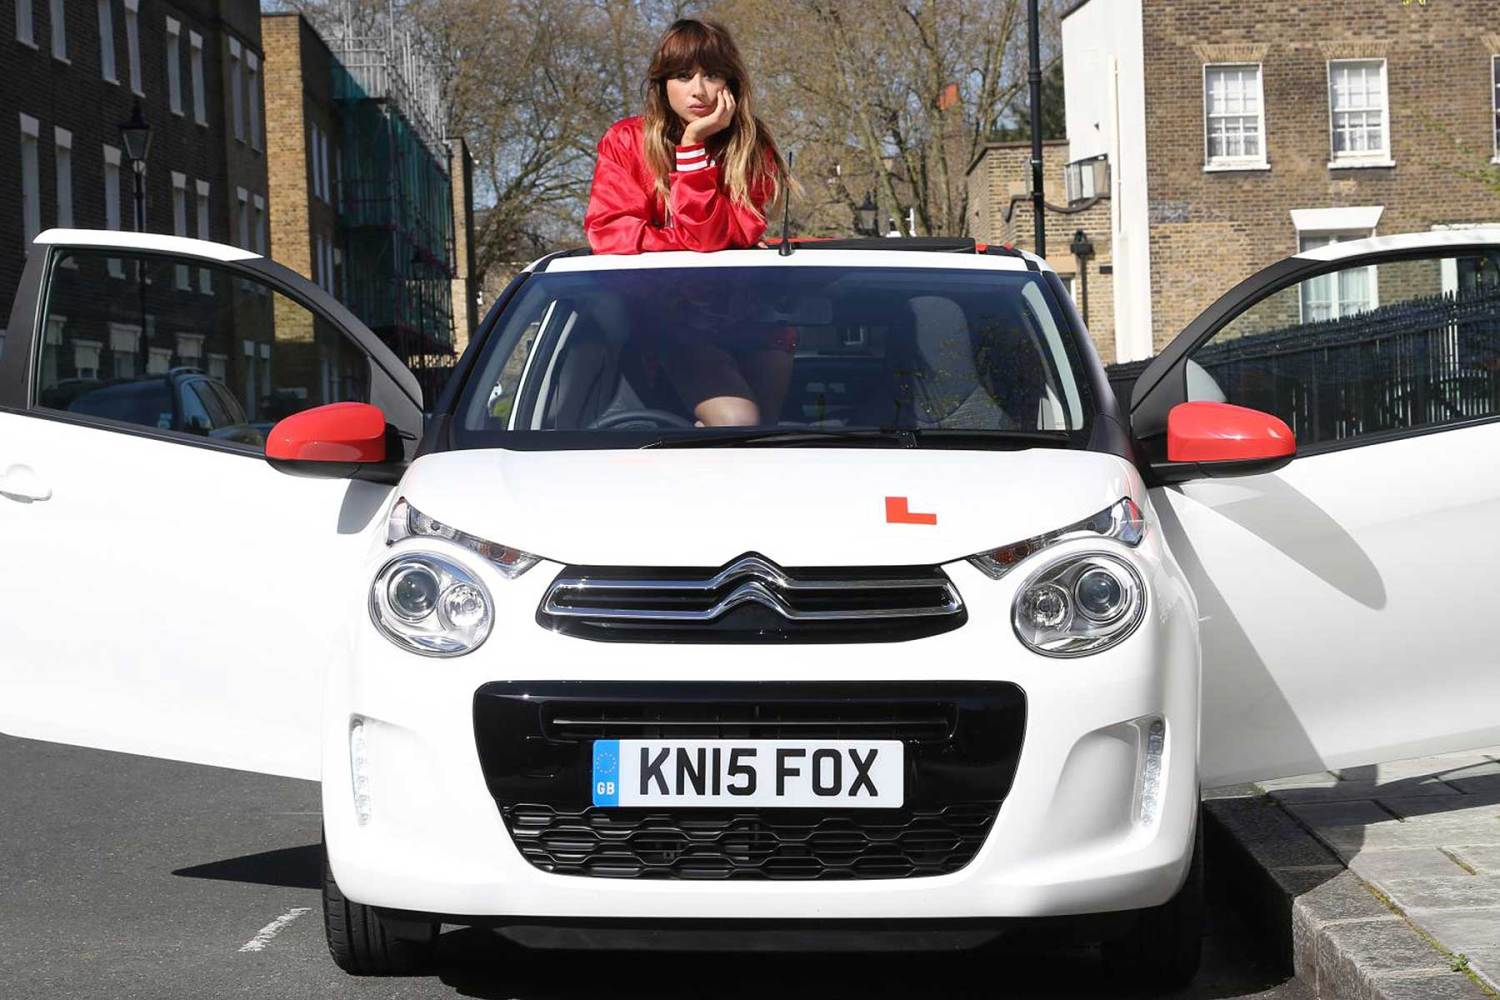 The cheapest cars to insure for 17-18 year olds: Citroen C1